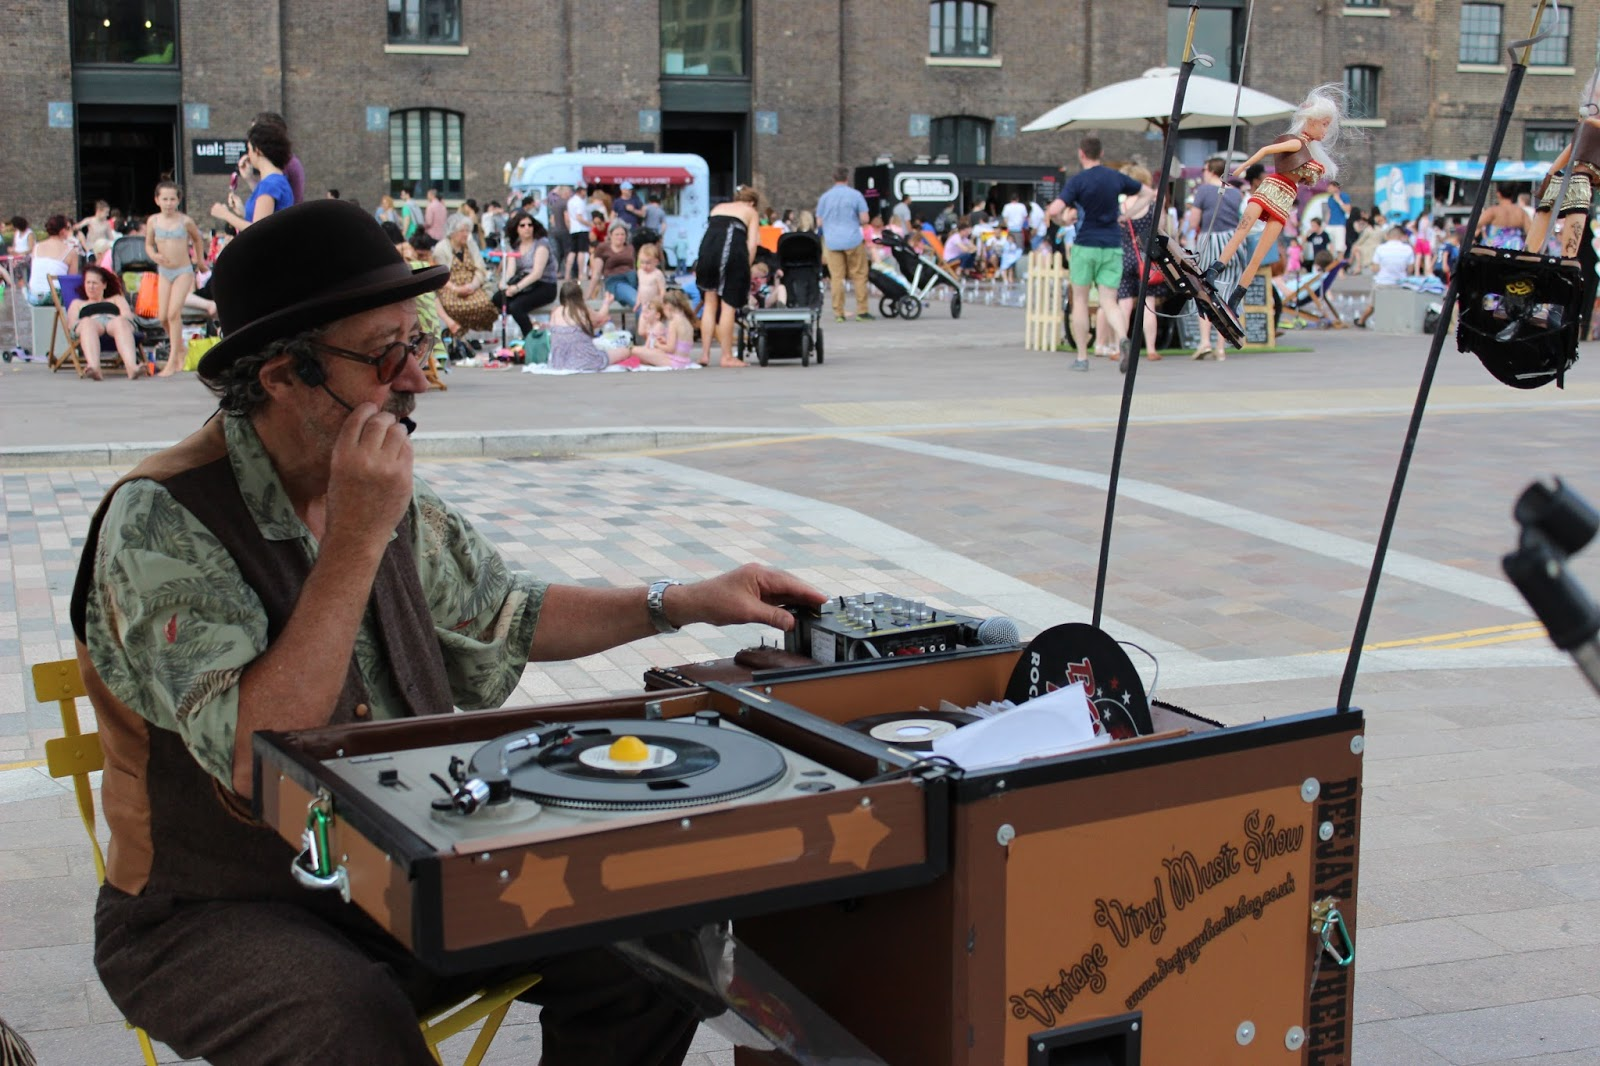 Kerb food market DJ